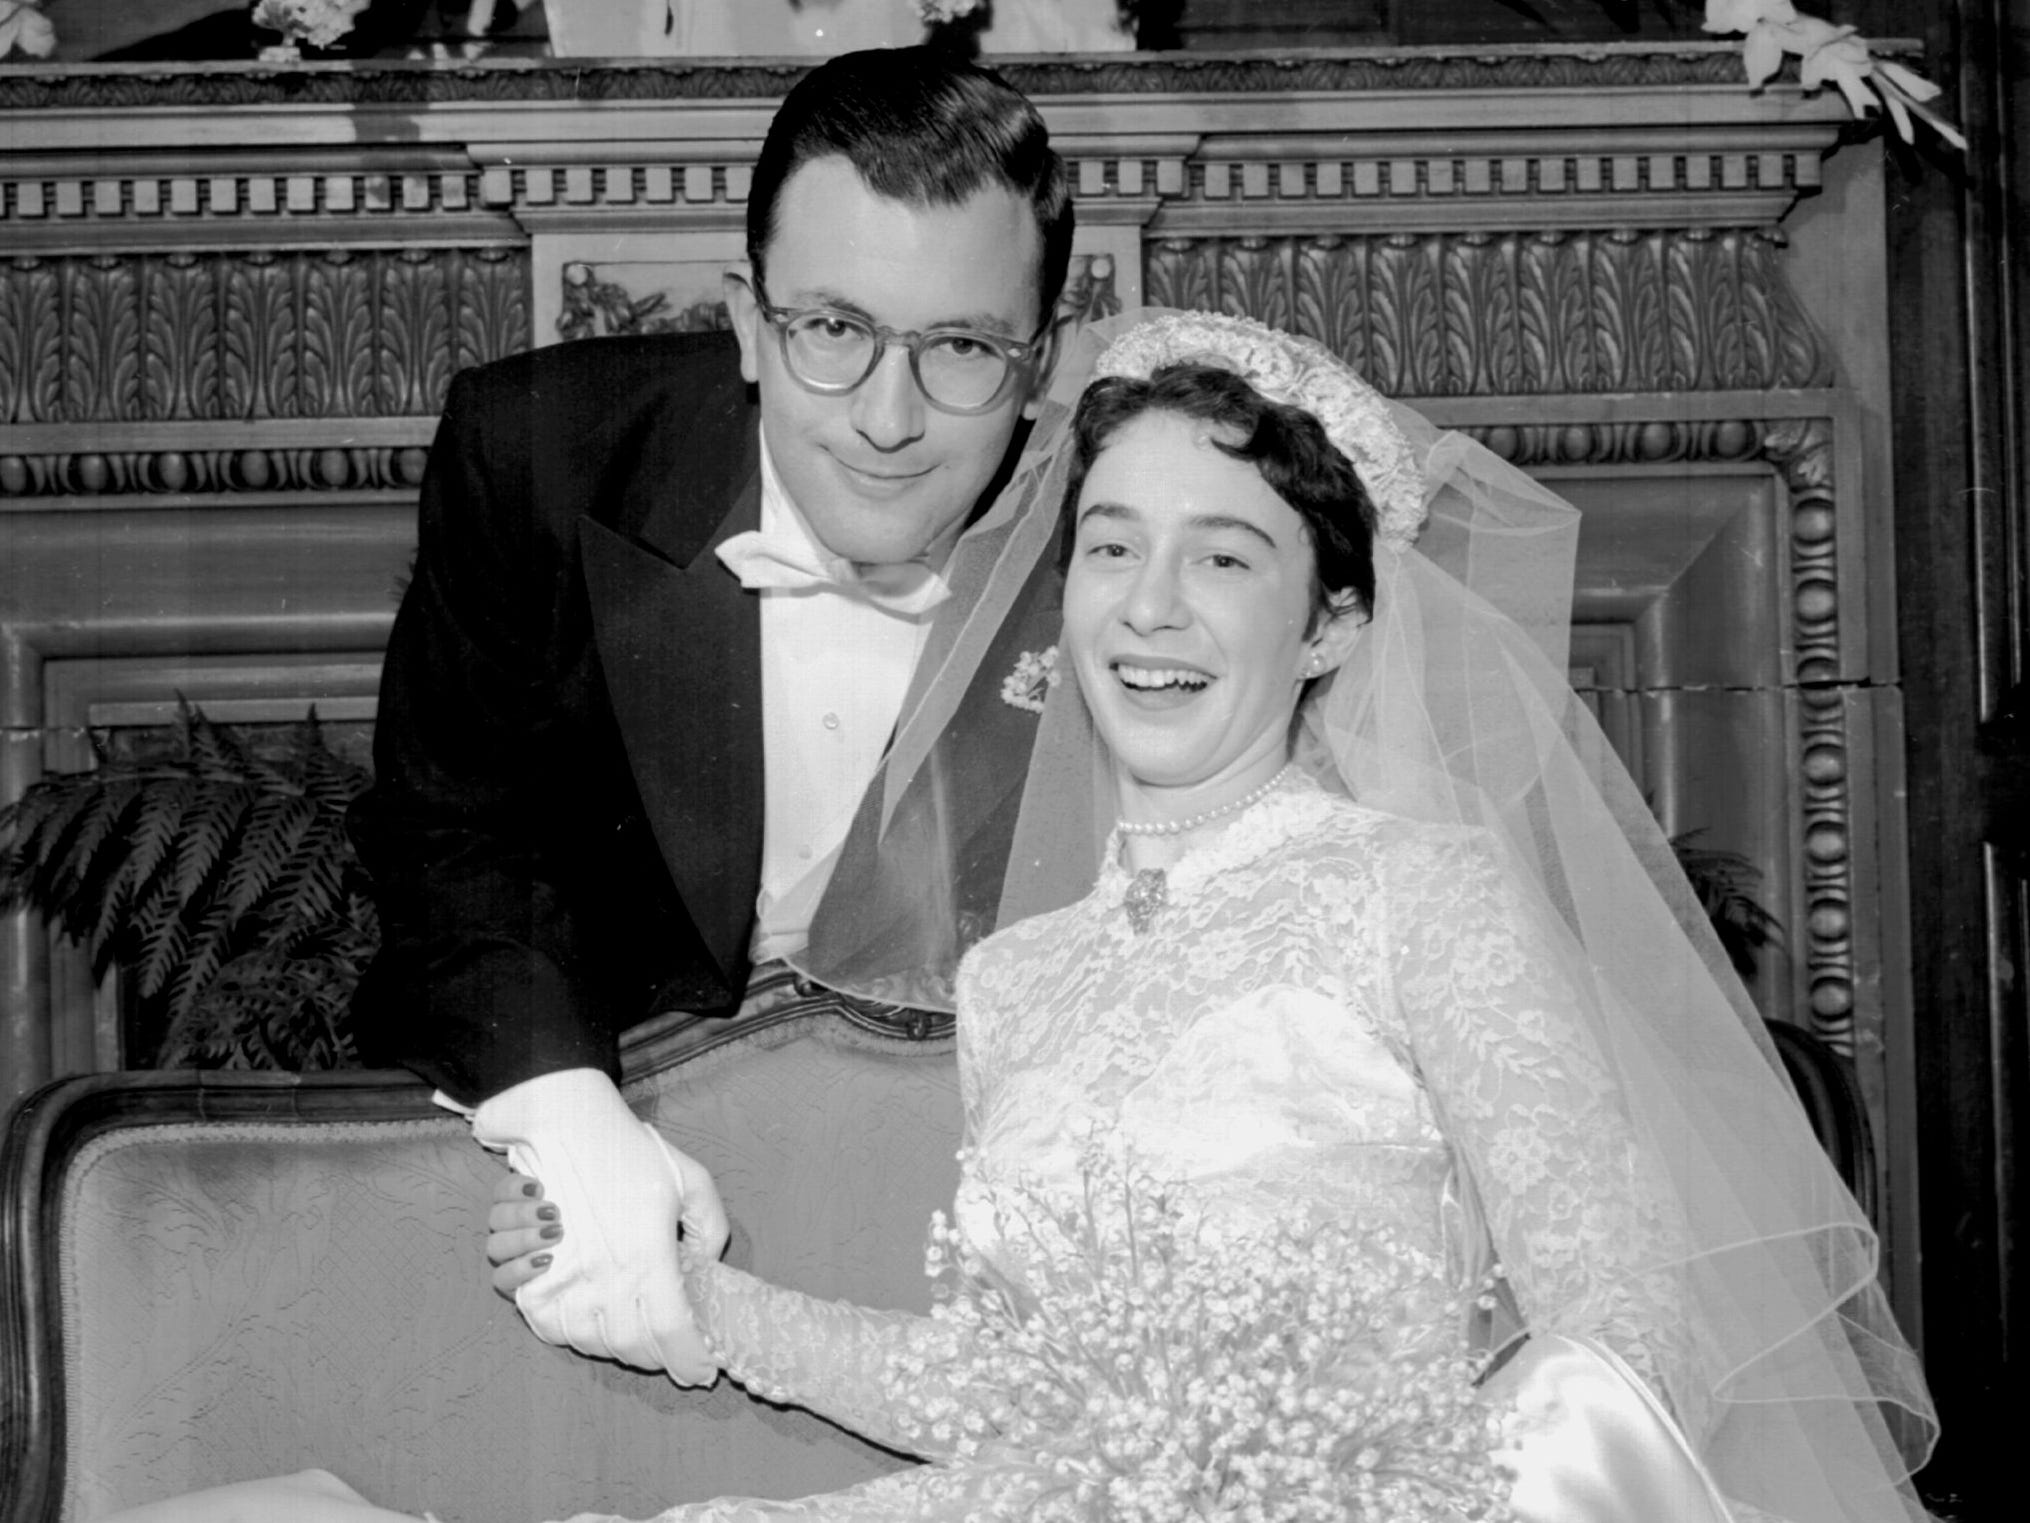 """Mr. and Mrs. Rudi Egon Scheidt pause in festivities at the Peabody following their wedding Feb. 13, 1954. She is the former Miss Helen """"Honey"""" Hohenberg, daughter of Mrs. and Mrs. Adolph Elkan Hohenberg of 54 White Station Road."""